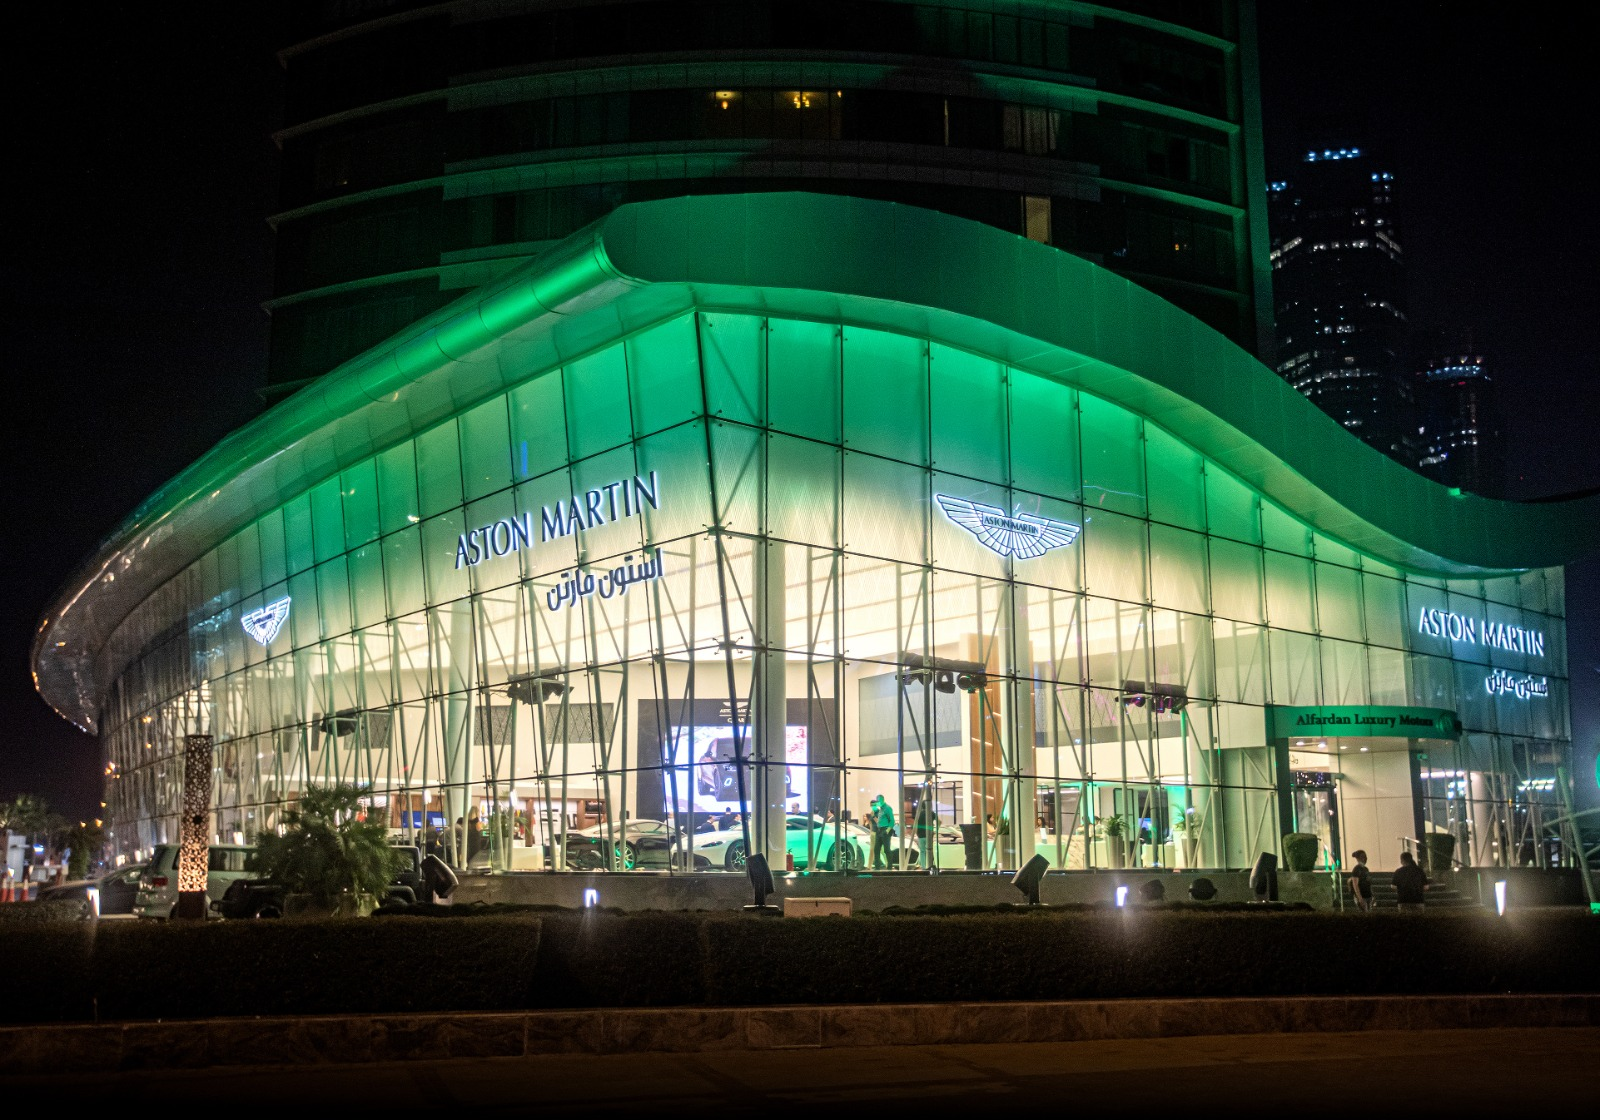 Aston Martin Showroom opens in Doha, Qatar